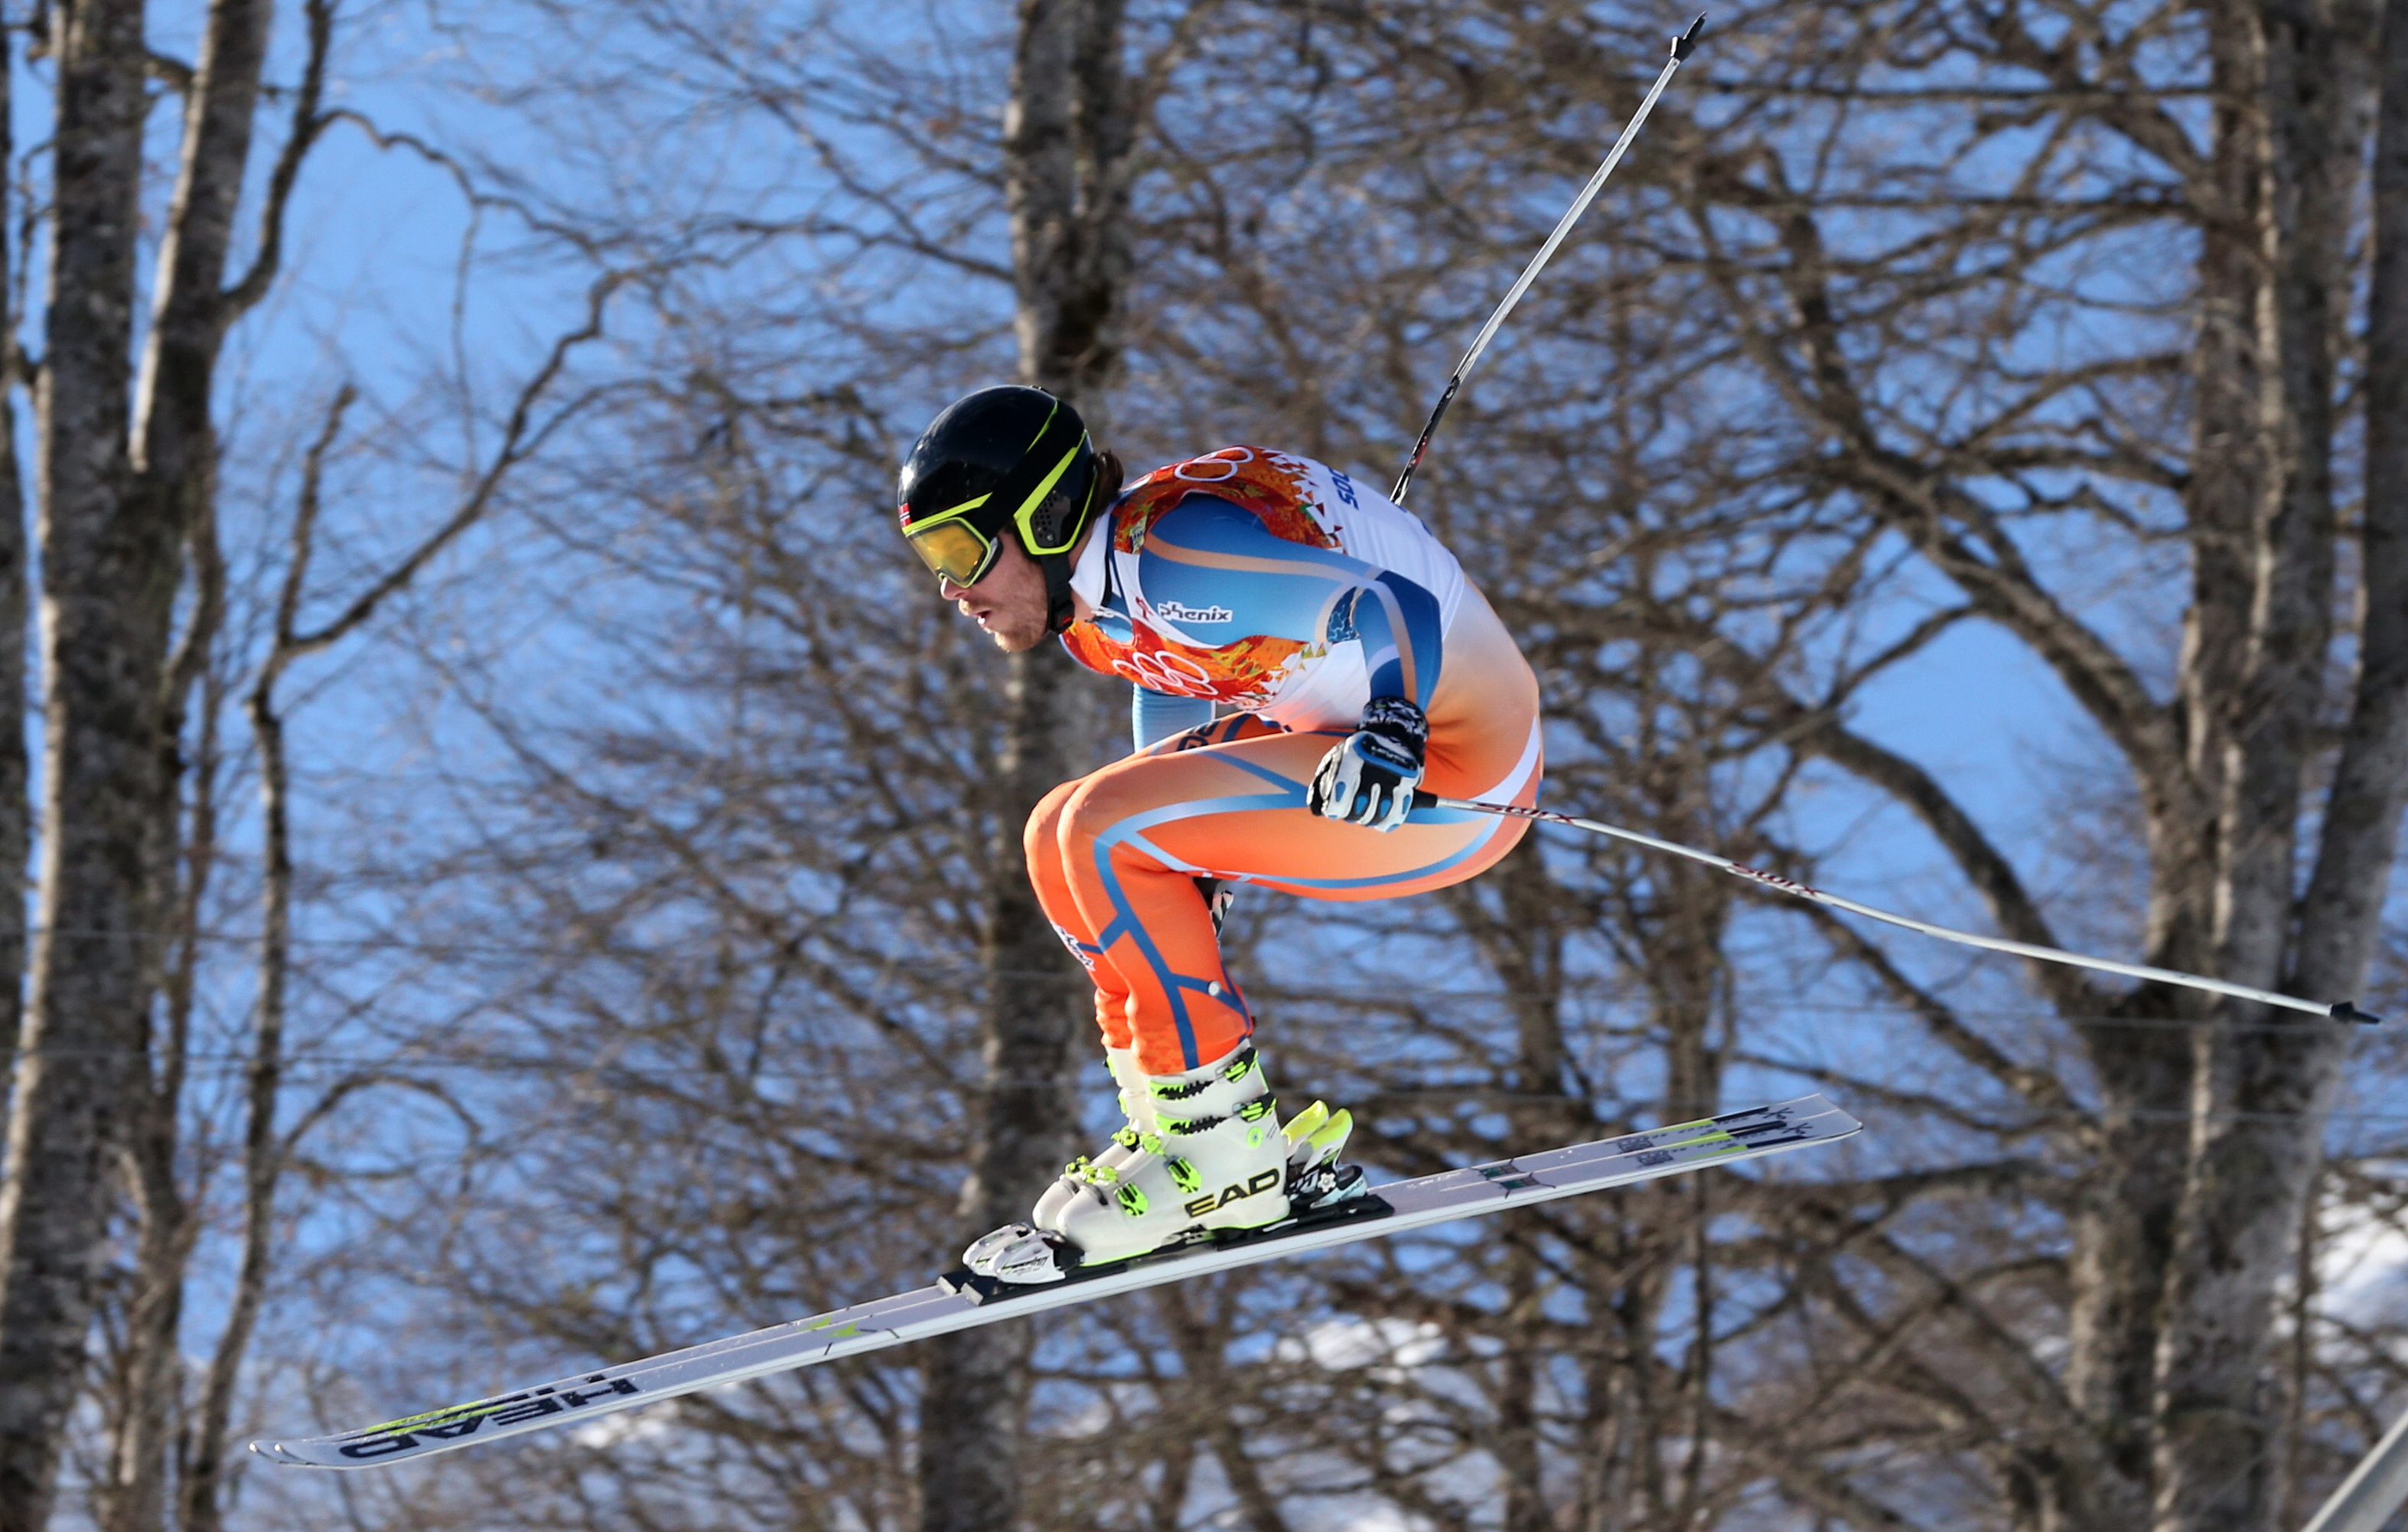 Norway's Kjetil Jansrud makes a jump during the downhill portion of the men's supercombined at the Sochi 2014 Winter Olympics, Friday, Feb. 14, 2014, in Krasnaya Polyana, Russia. (AP Photo/Luca Bruno)